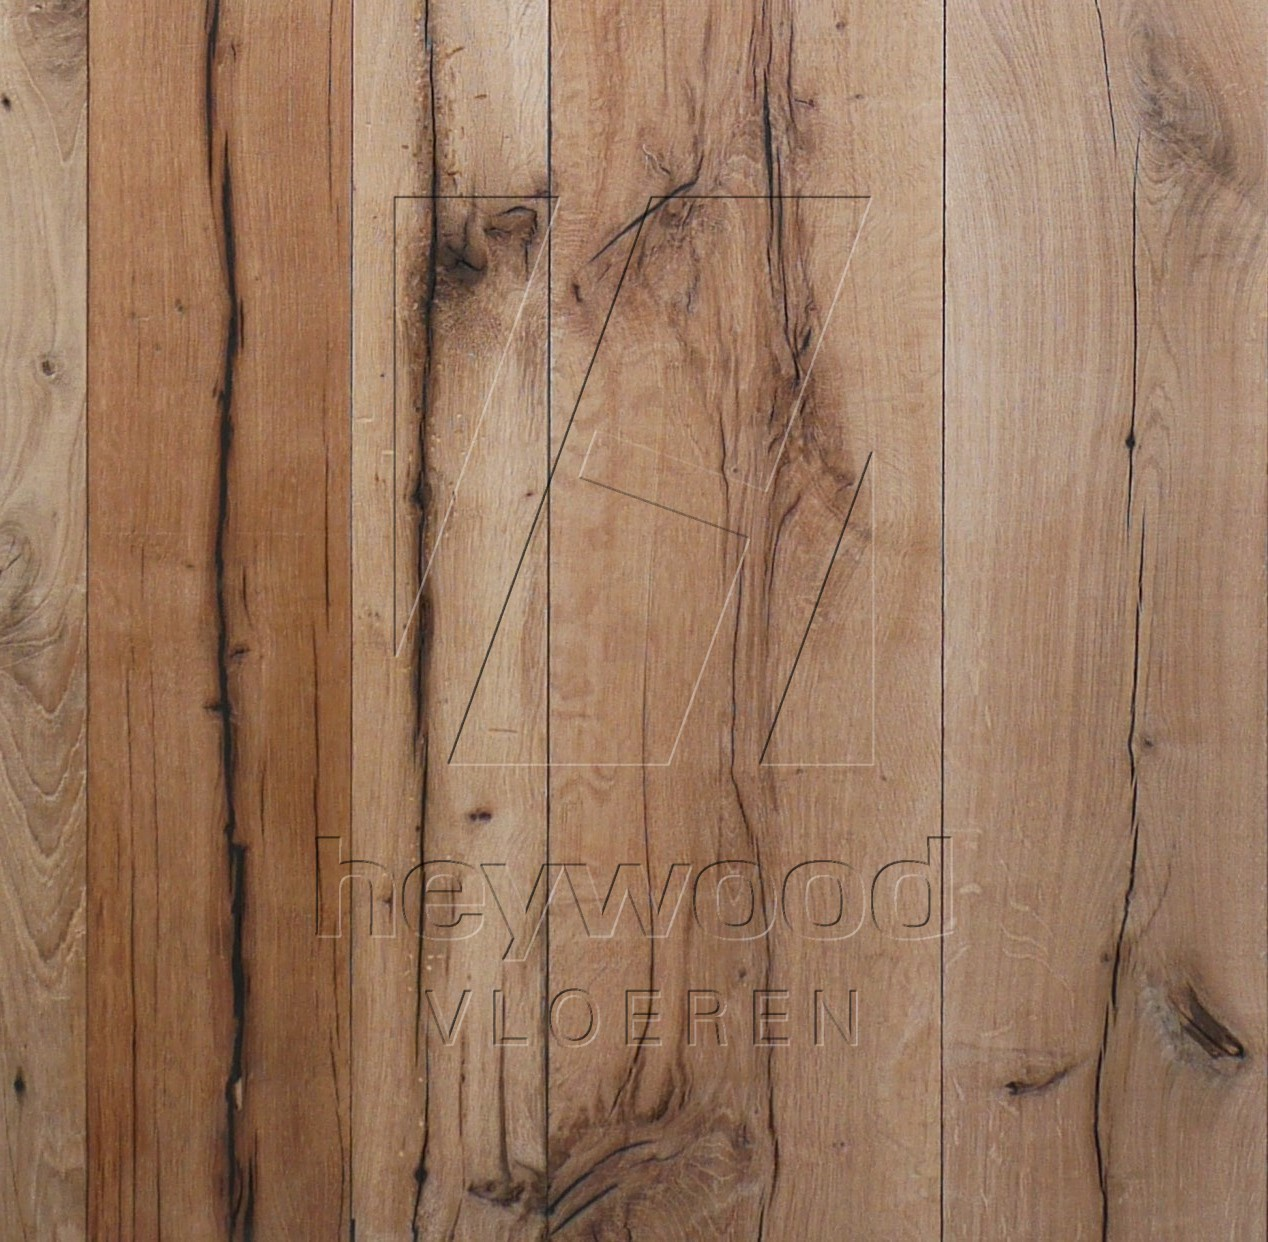 Reclaimed Plank 'Provence' (mixed width, unoiled) in Plank INSIDES (Brushed 2nd cut) of Old Reclaimed Wood